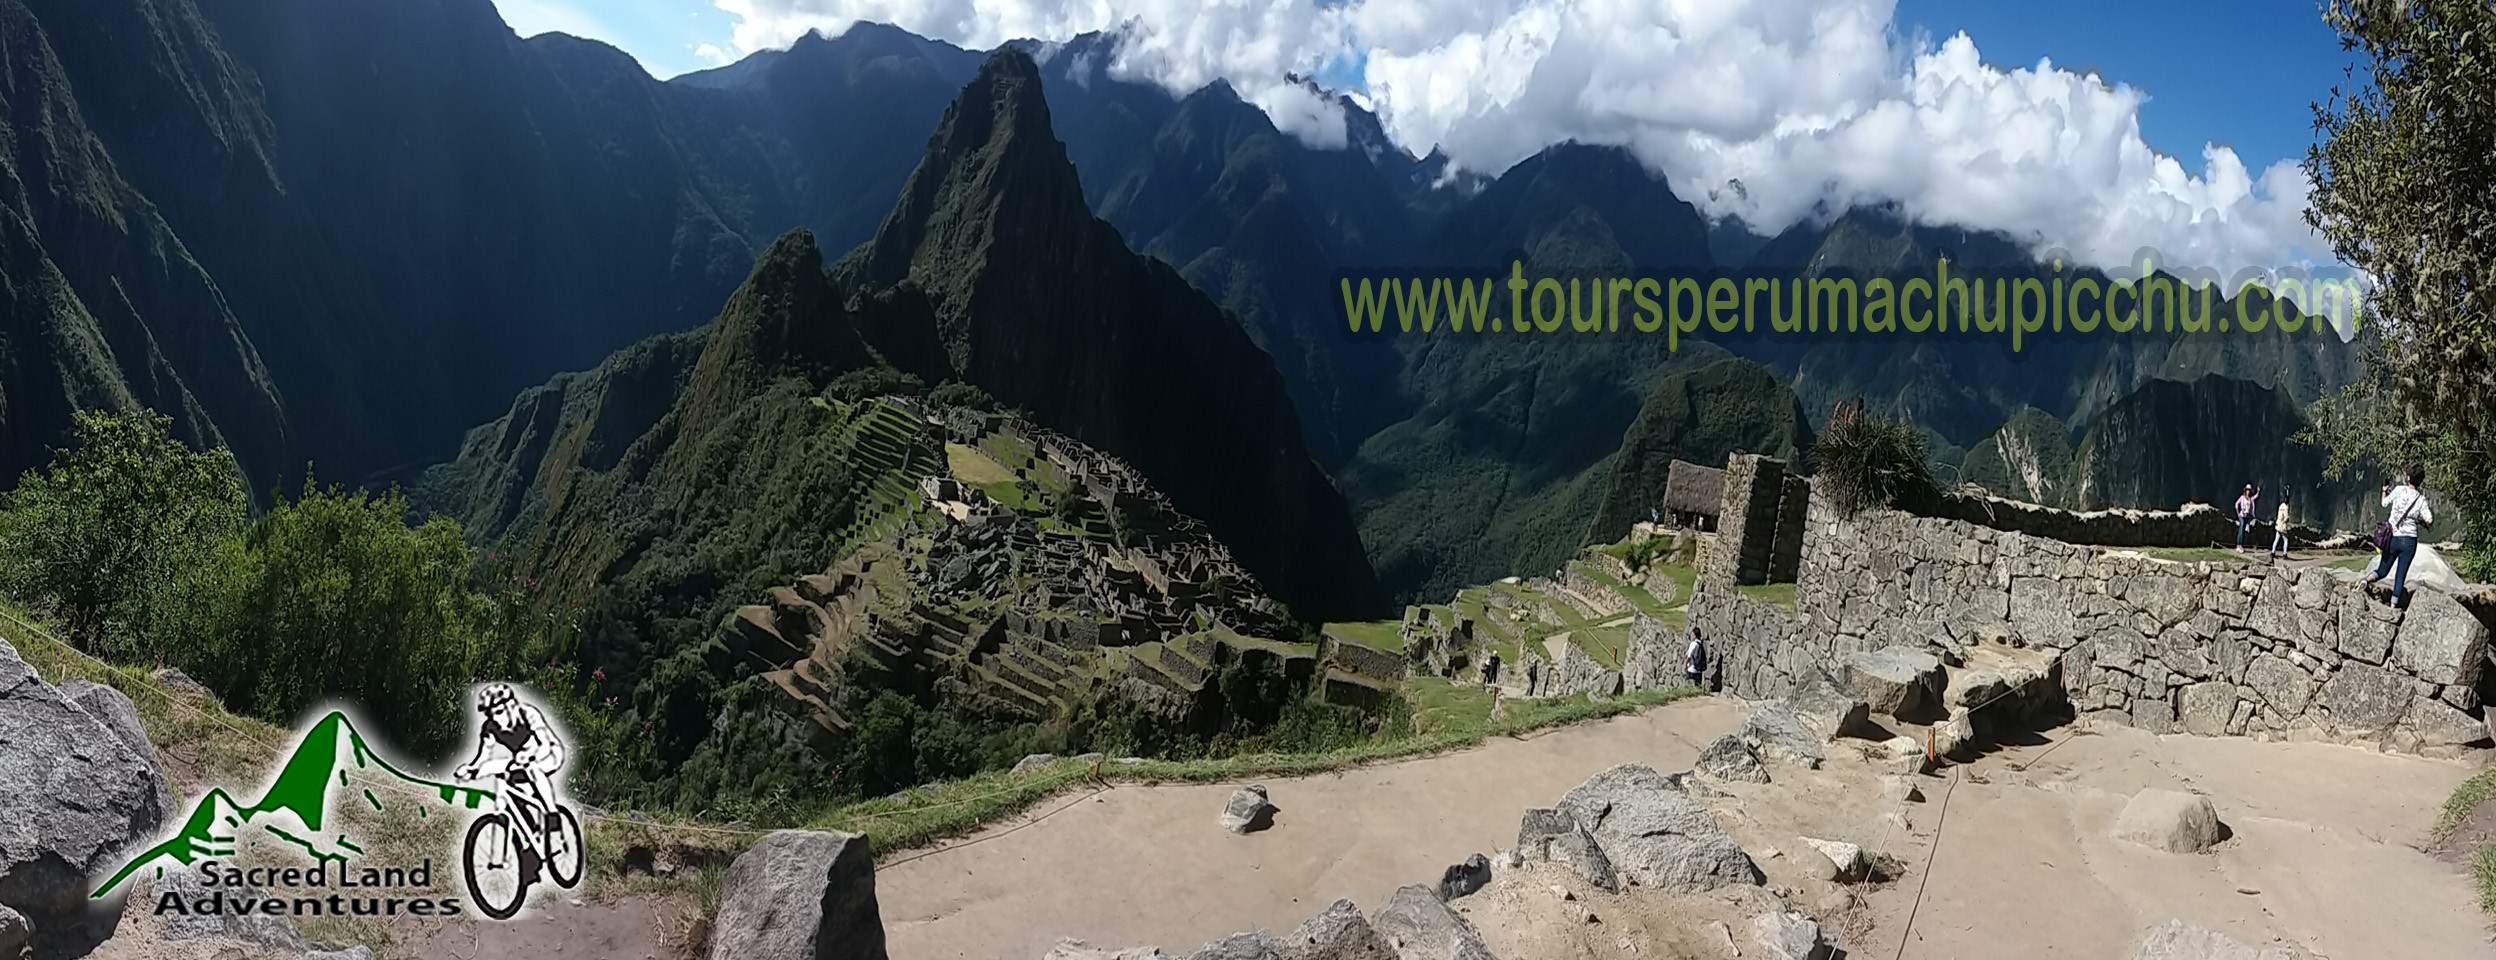 tours peru machupicchu - tours peru - peru travel